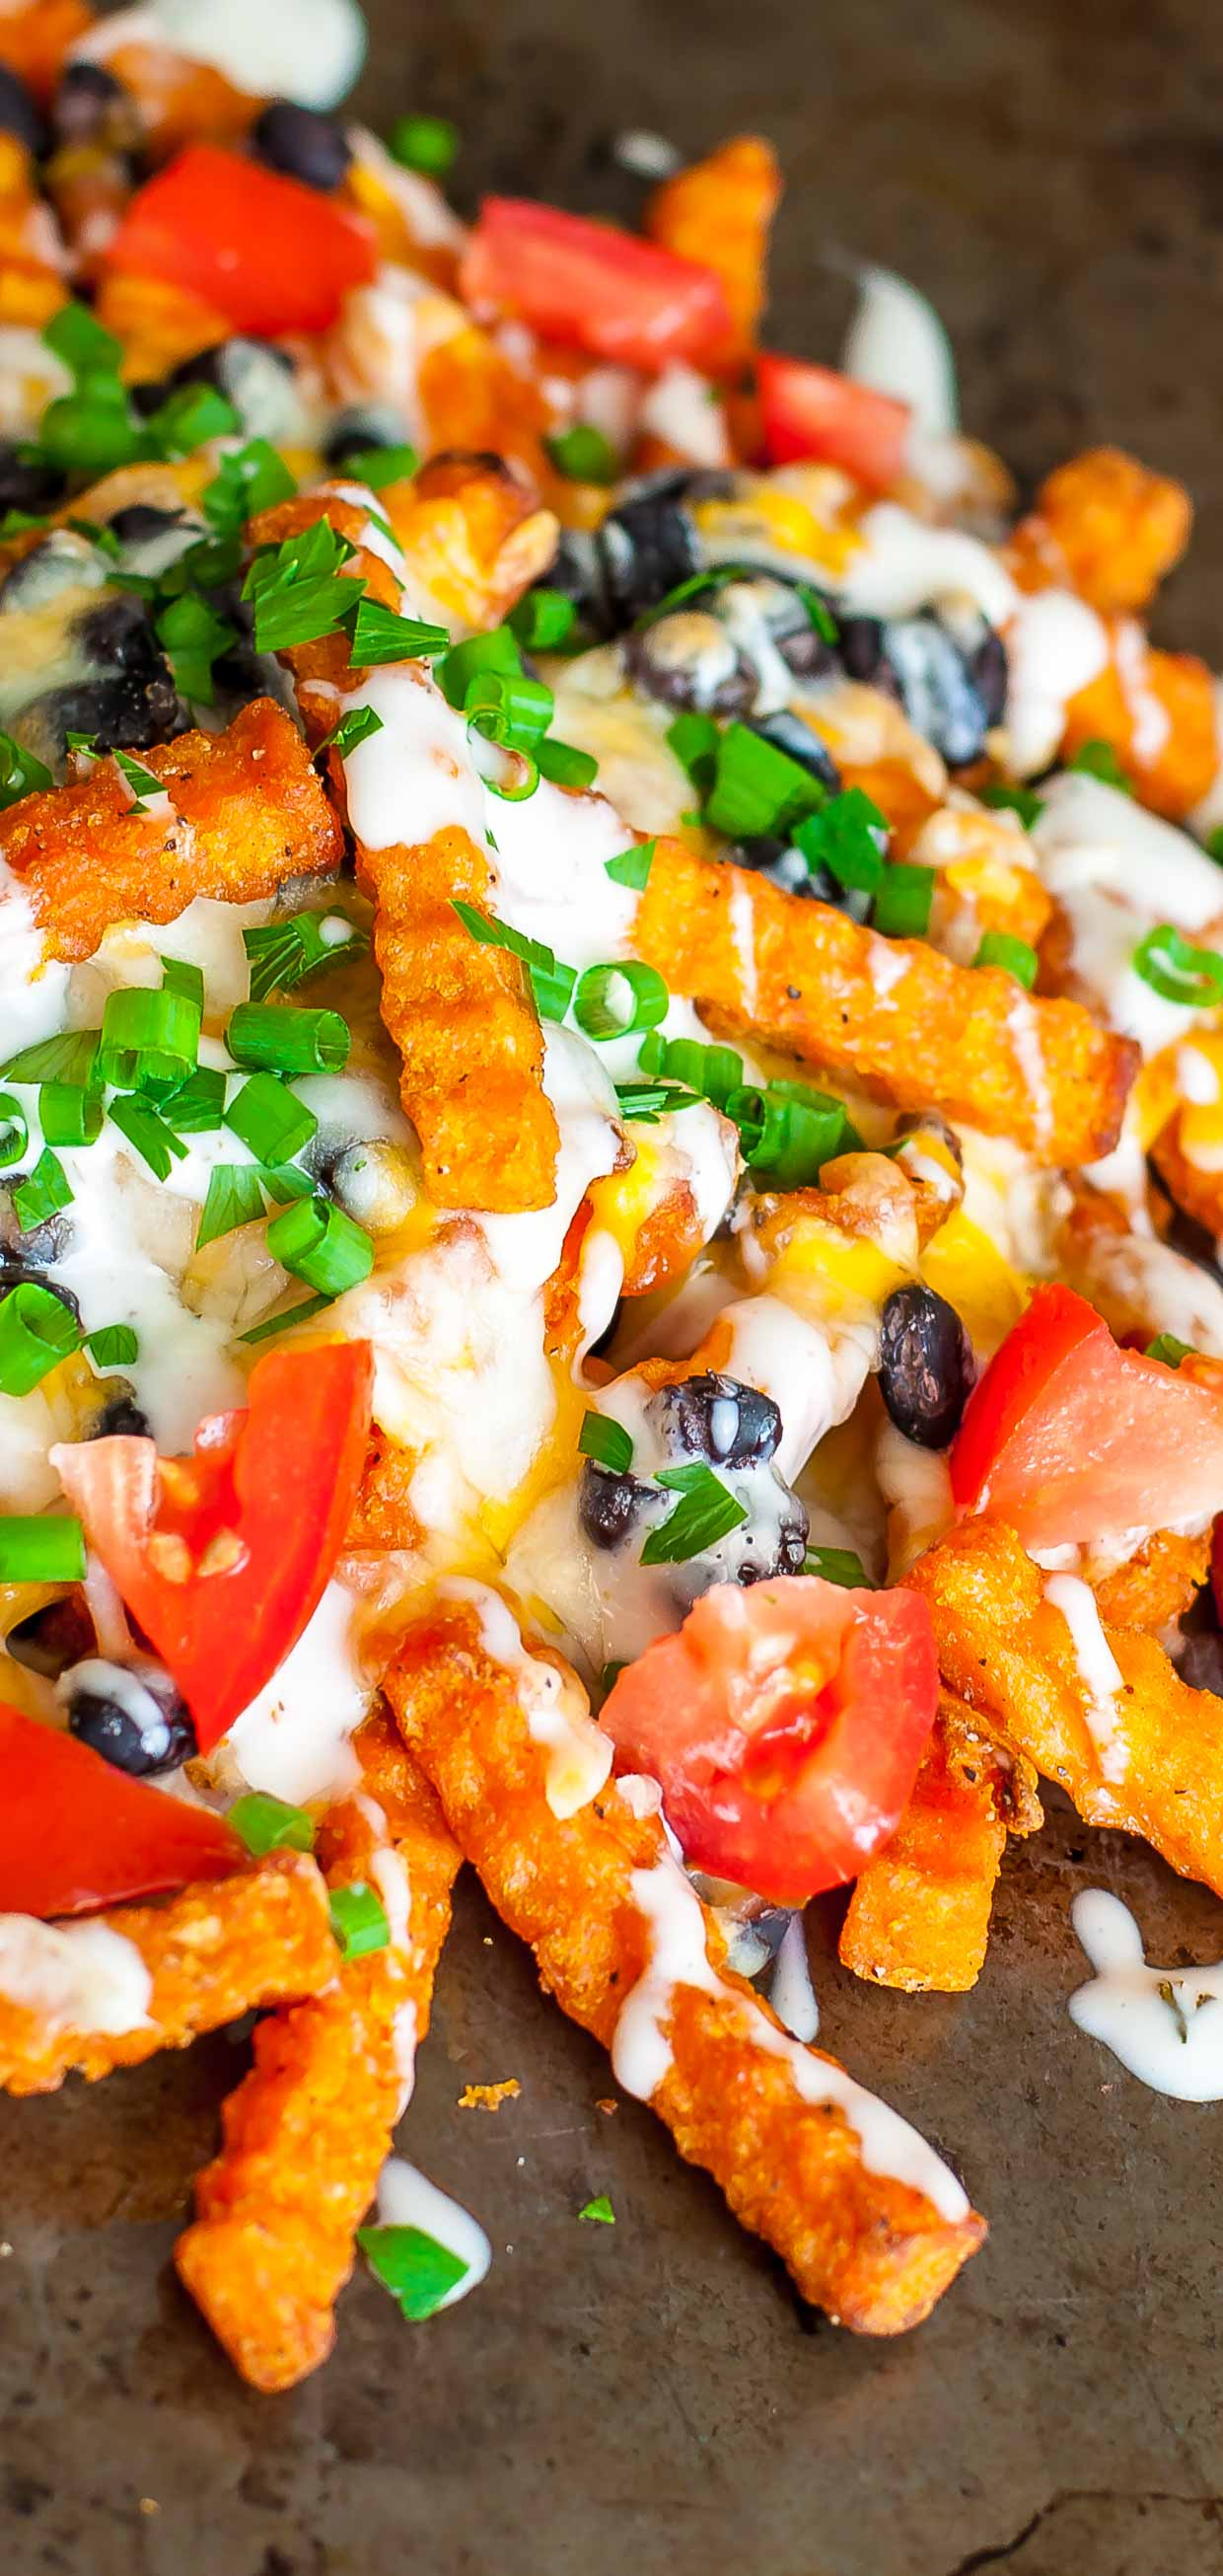 Whenever I have a lone bag of french fries in my freezer I bake them up and make Loaded Mexican Sweet Potato Cheese Fries - like nachos, only better!